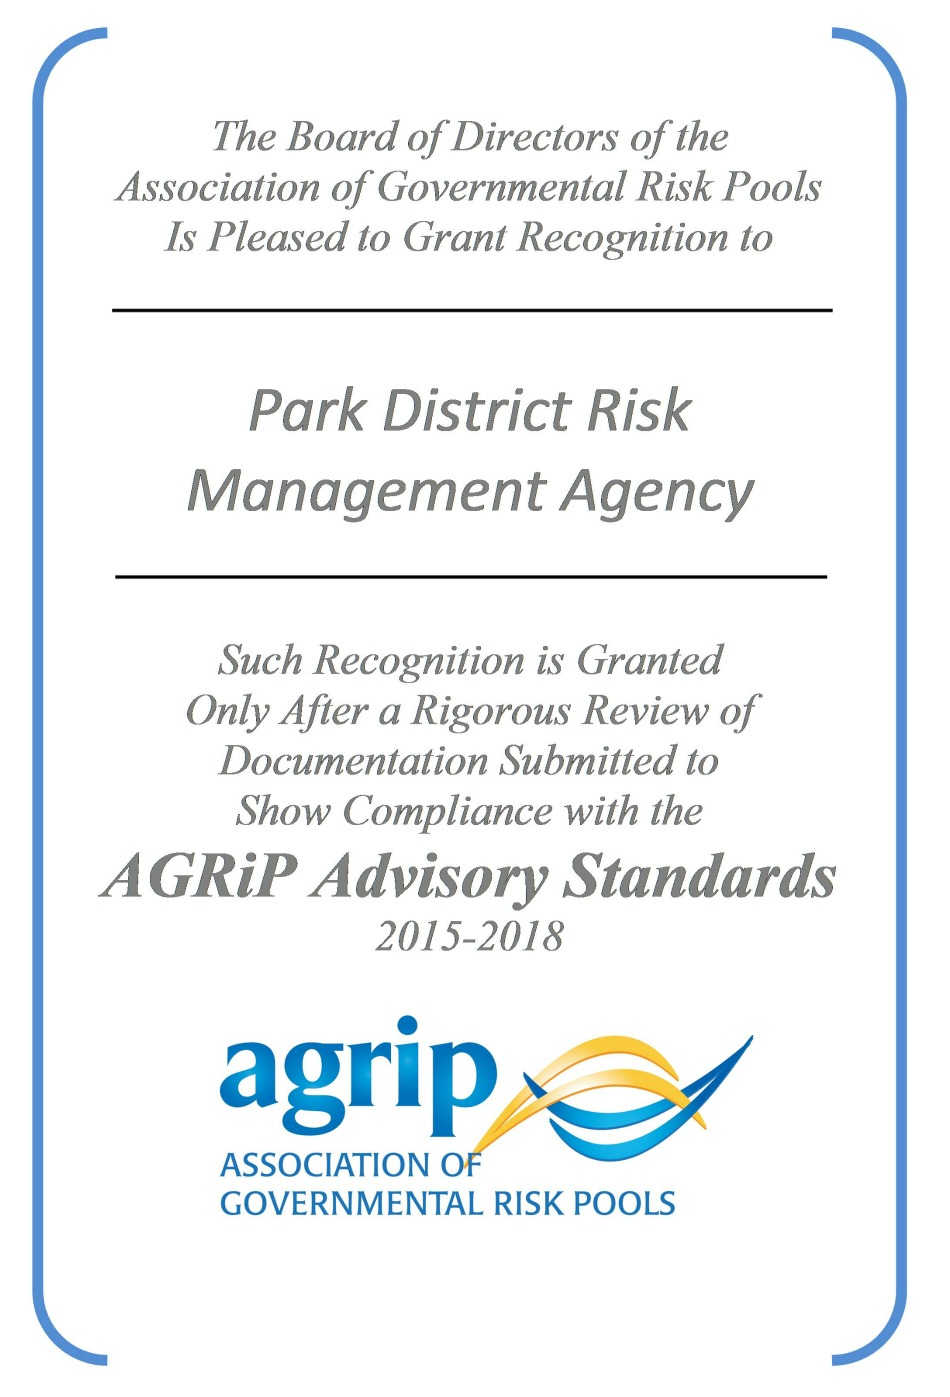 AGRiP Award for Excellence